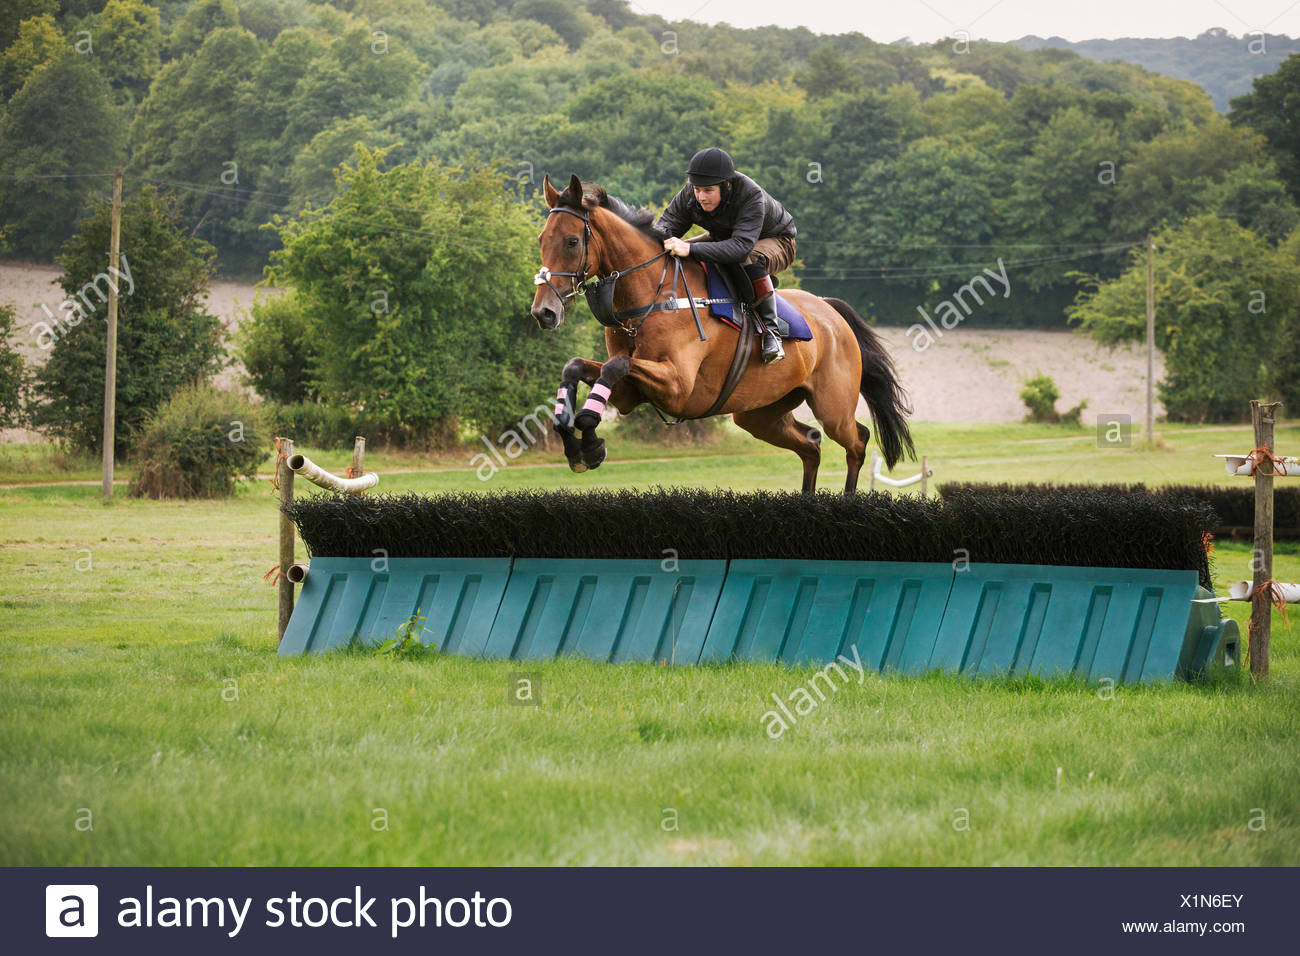 Man On A Bay Thoroughbred Horse Jumping A Brush Fence A Racing Hurdle On A Rural Point To Point Course Stock Photo Alamy